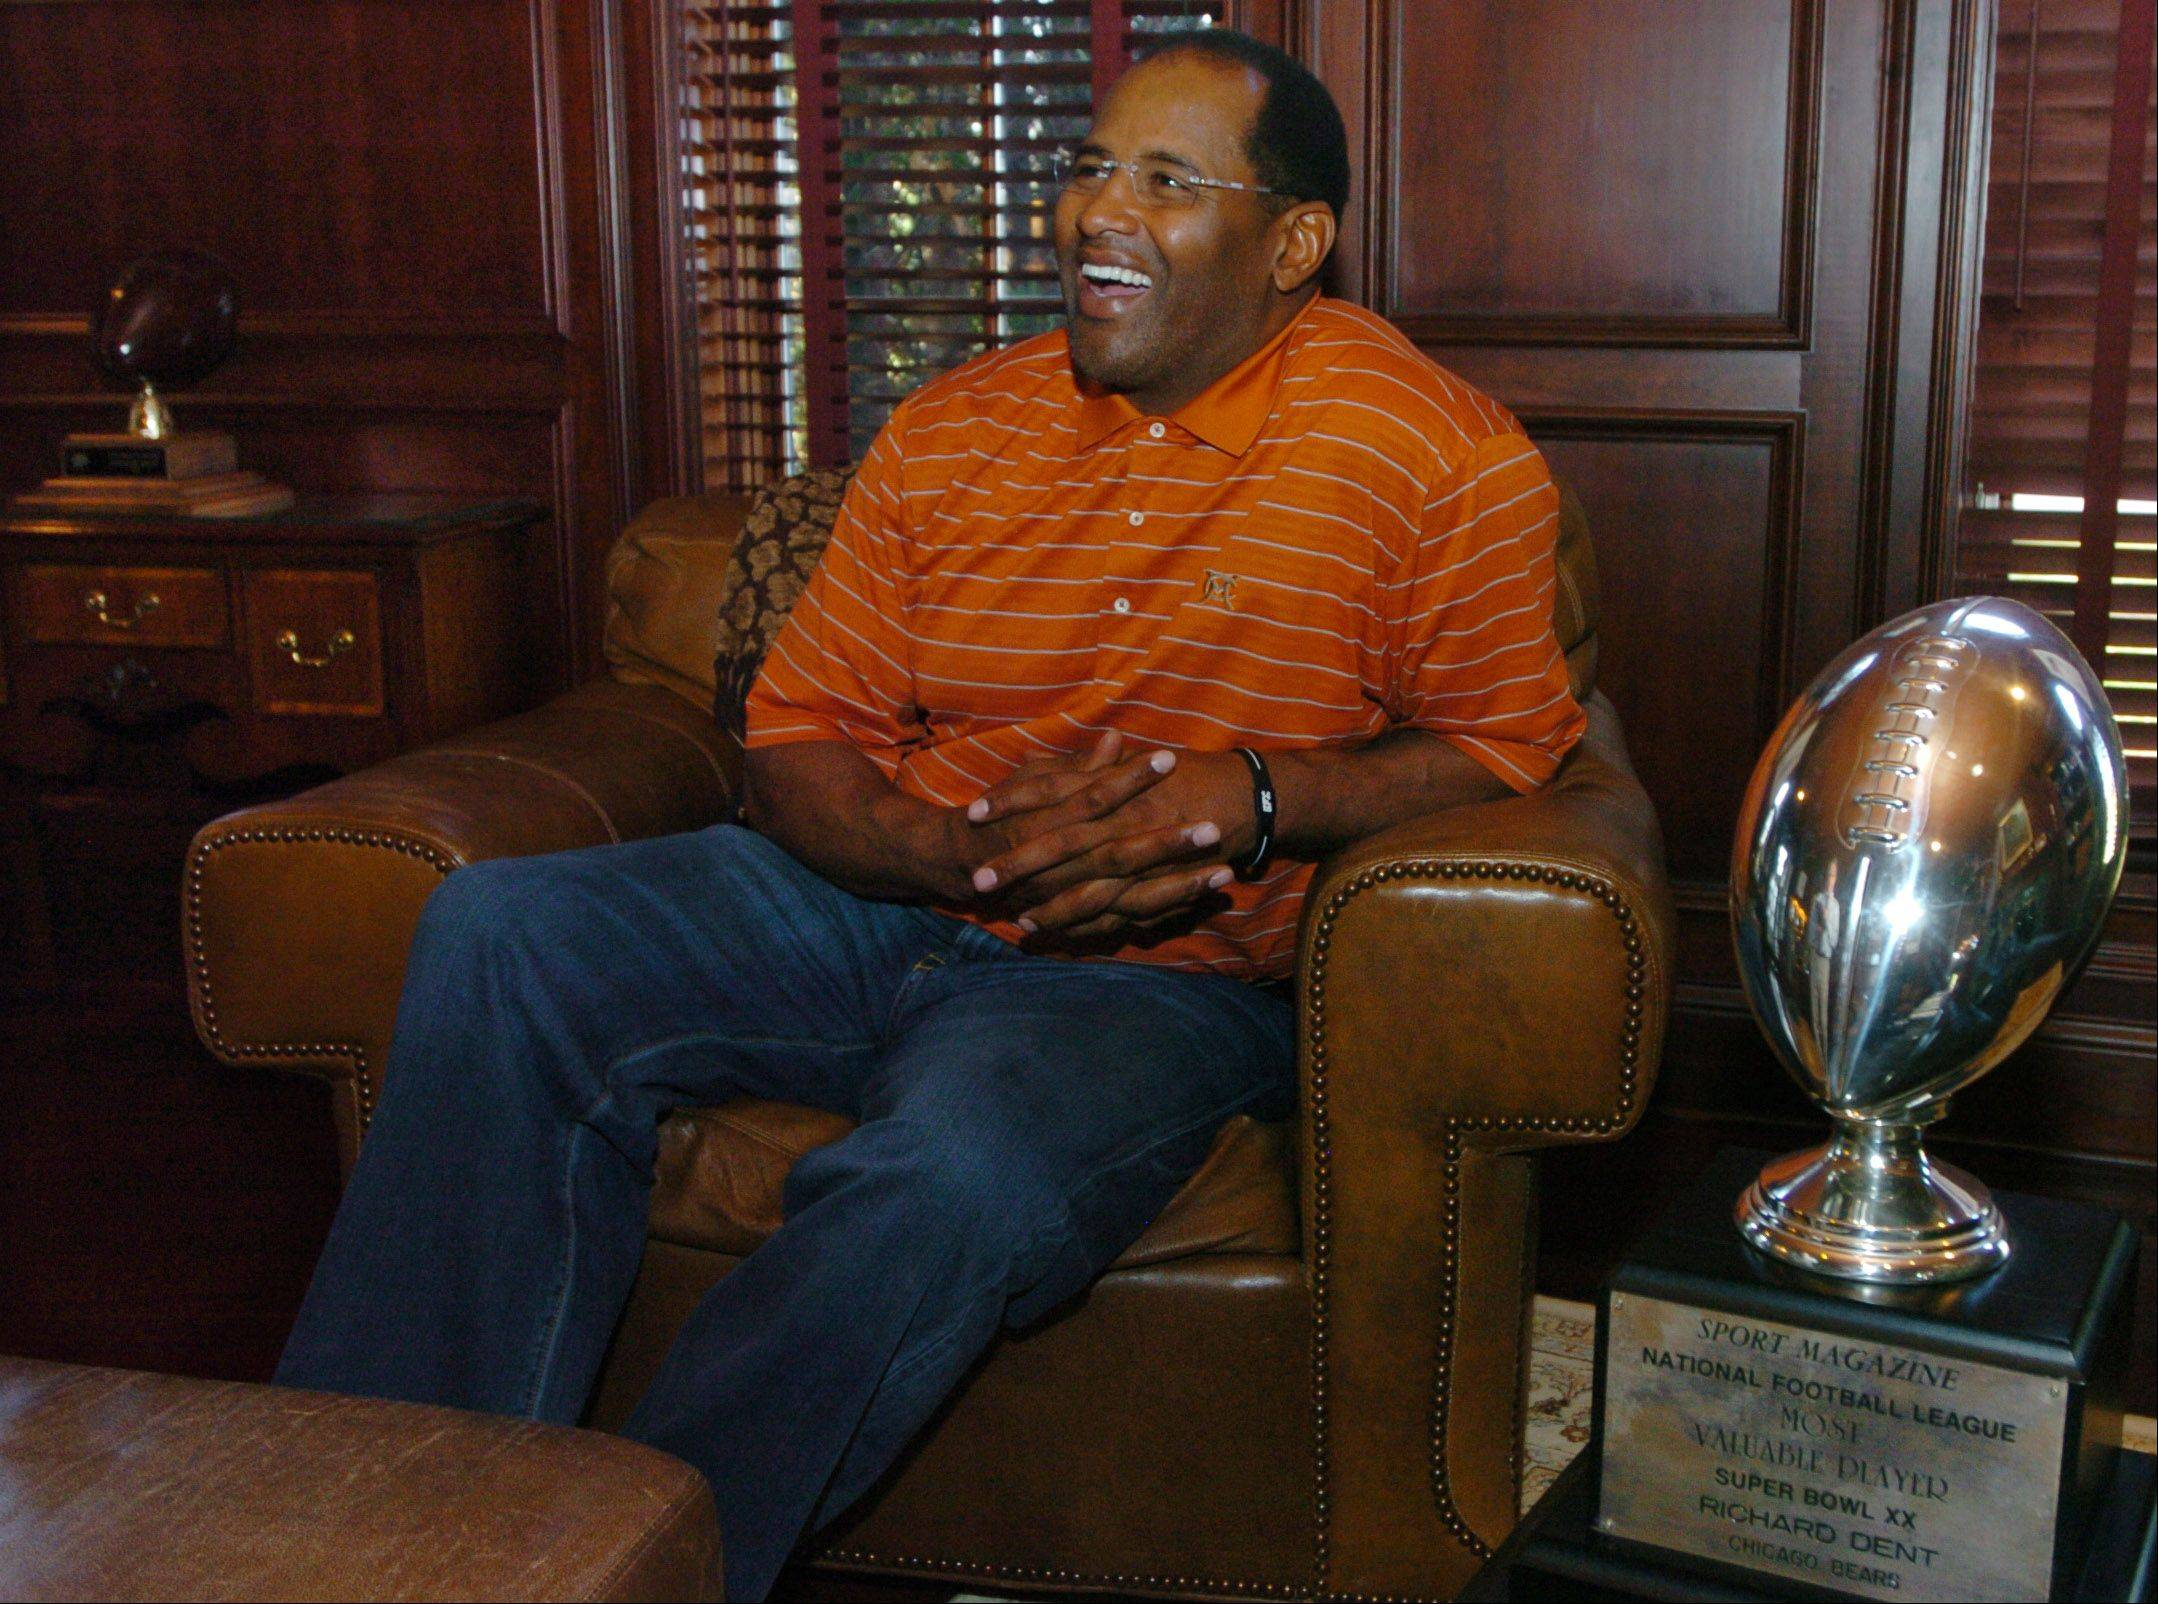 Relaxing in the trophy room of his Long Grove home, Richard Dent talks about his Bears career that saw him named MVP of the 1986 Super Bowl and earn a spot in the Pro Football Hall of Fame.